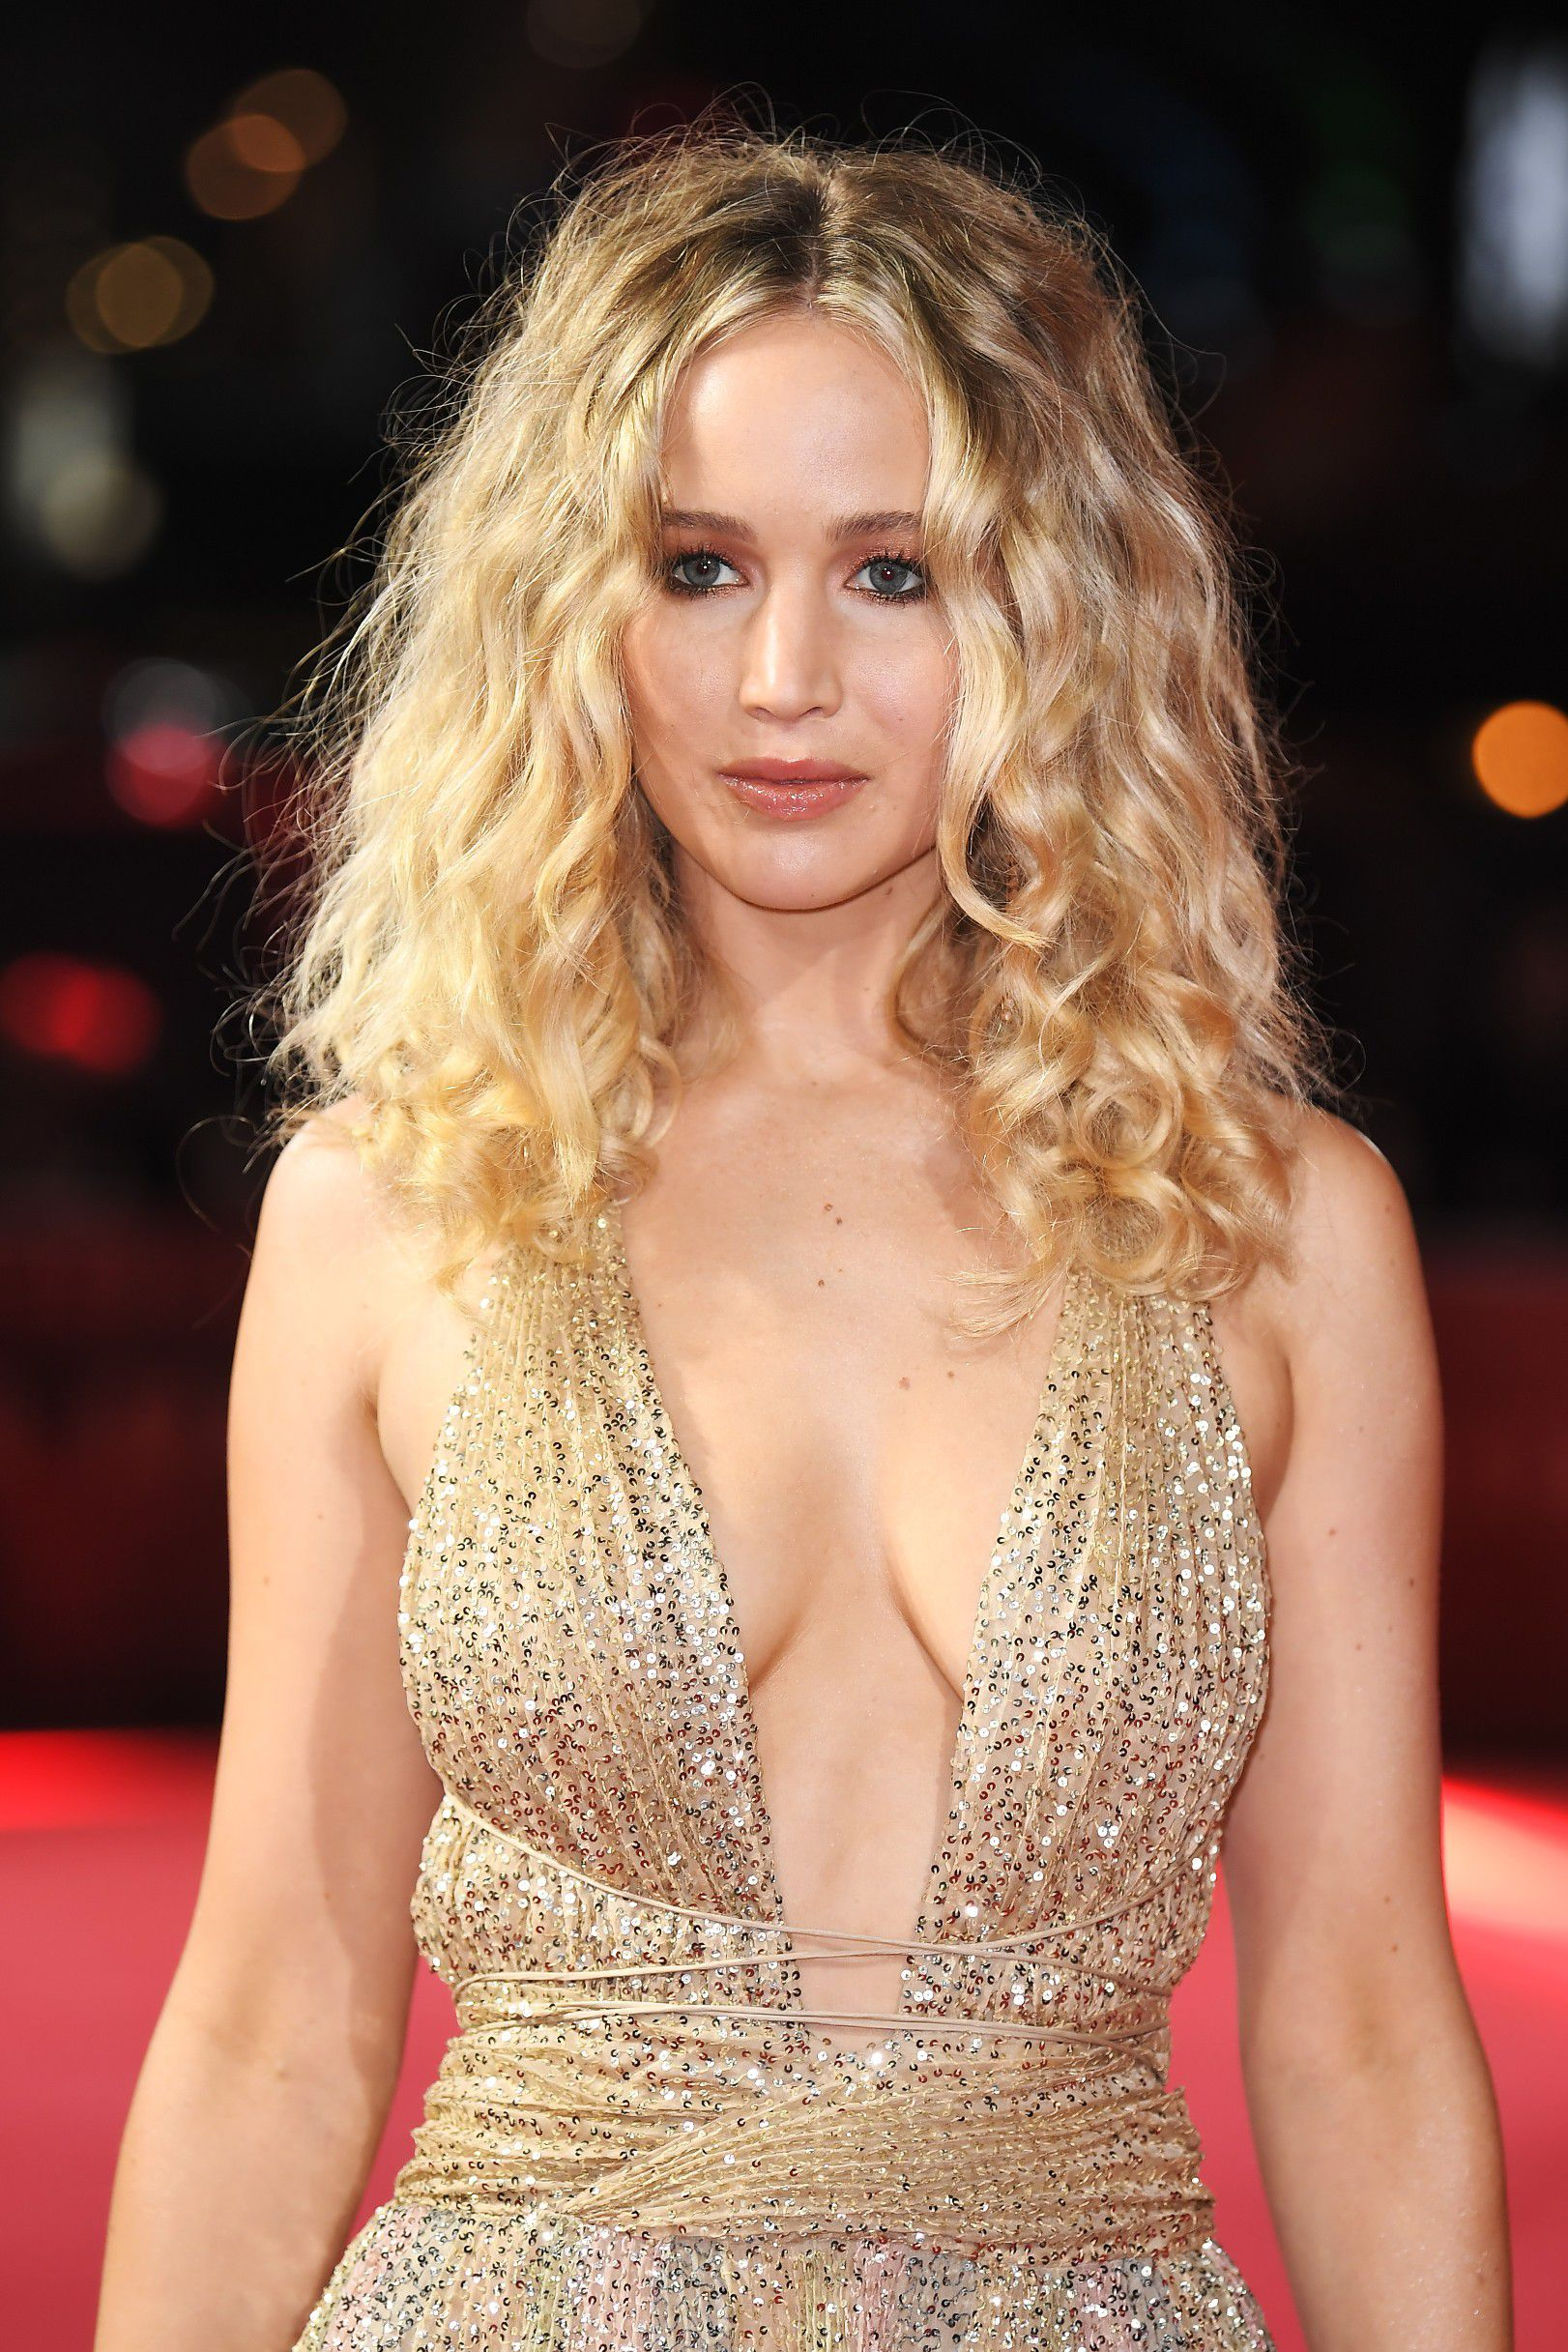 jennifer-lawrence-cleavage-at-red-sparrow-premiere-in-london-6147